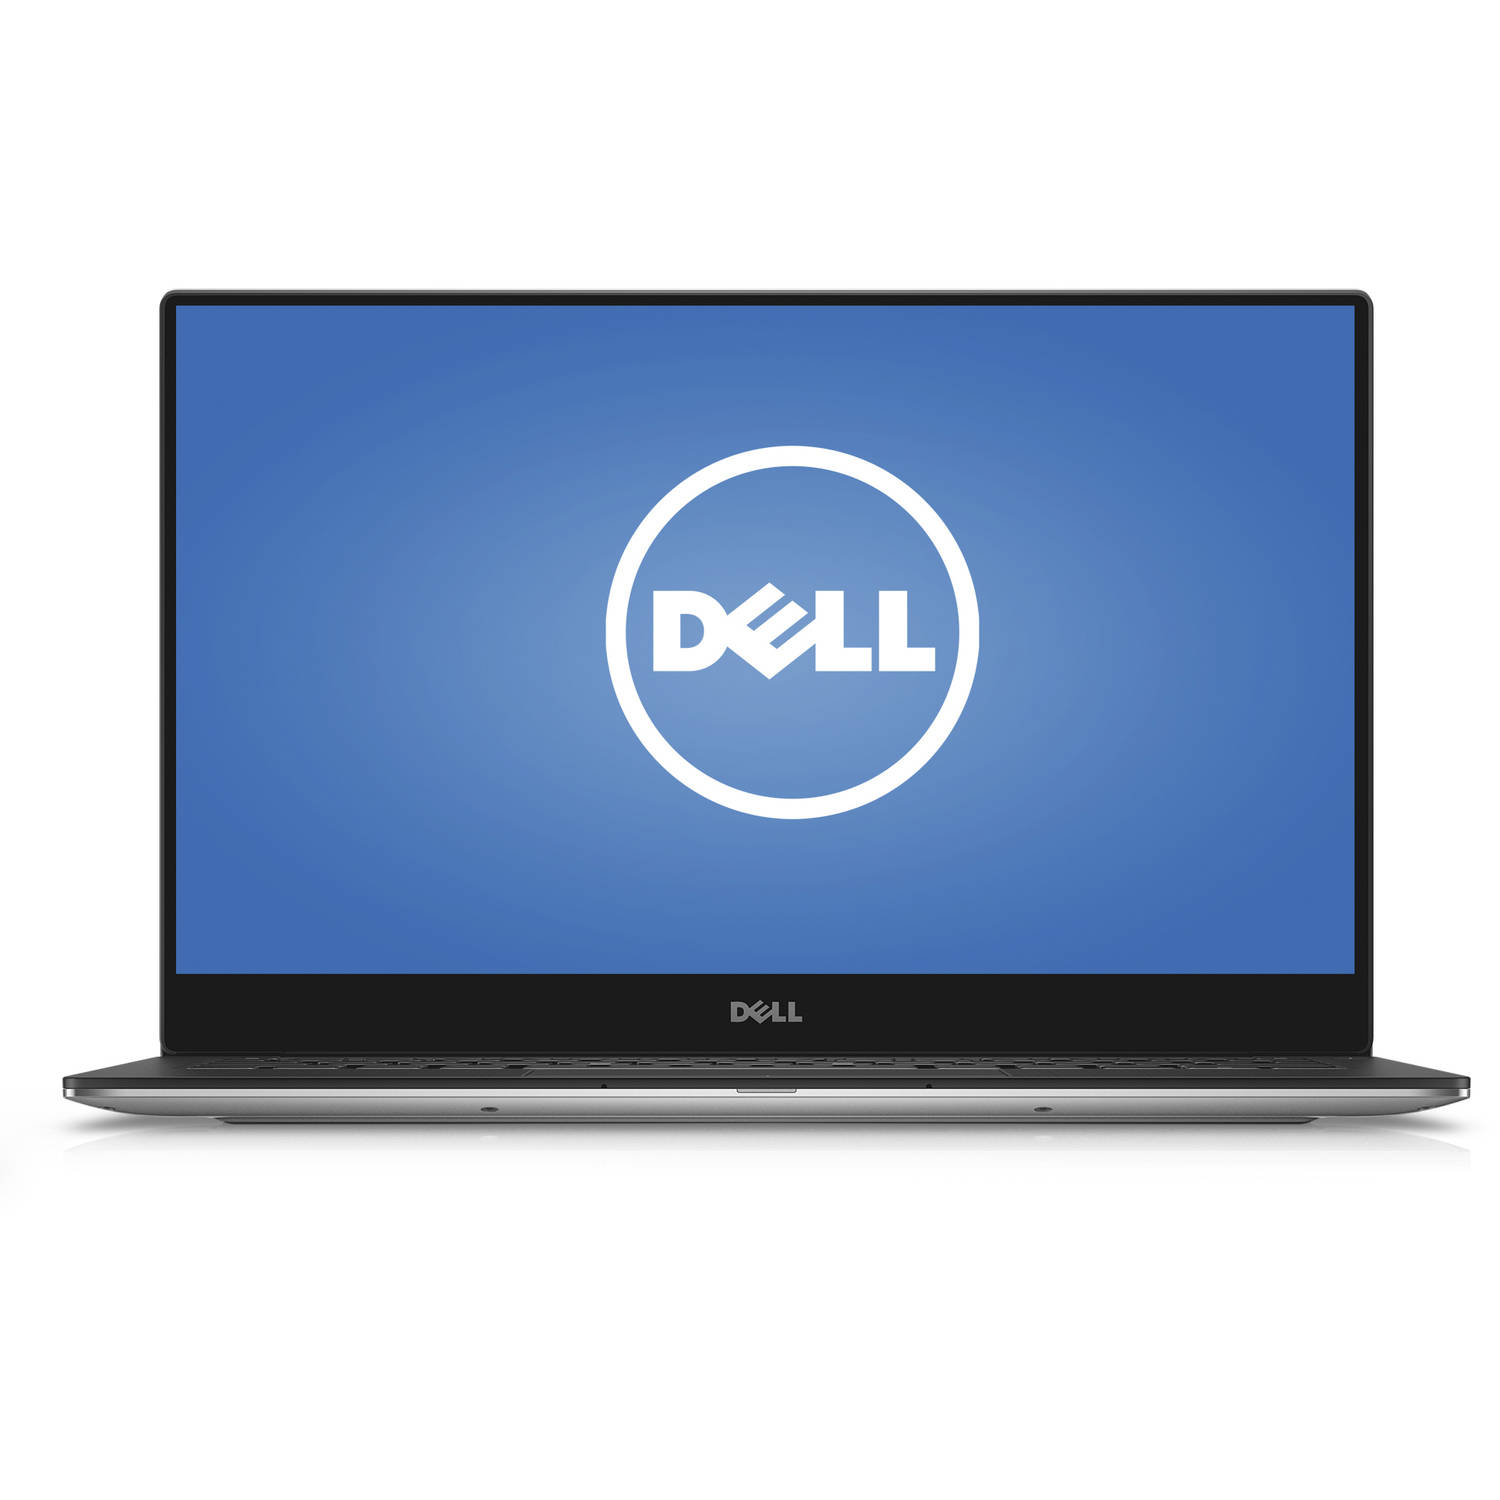 """Dell Silver 13.3"""" XPS QHD+ Laptop PC with Intel Core i7-6560U Processor, 16GB Memory, touch screen, 512GB Solid State Drive and Windows 10 Home"""